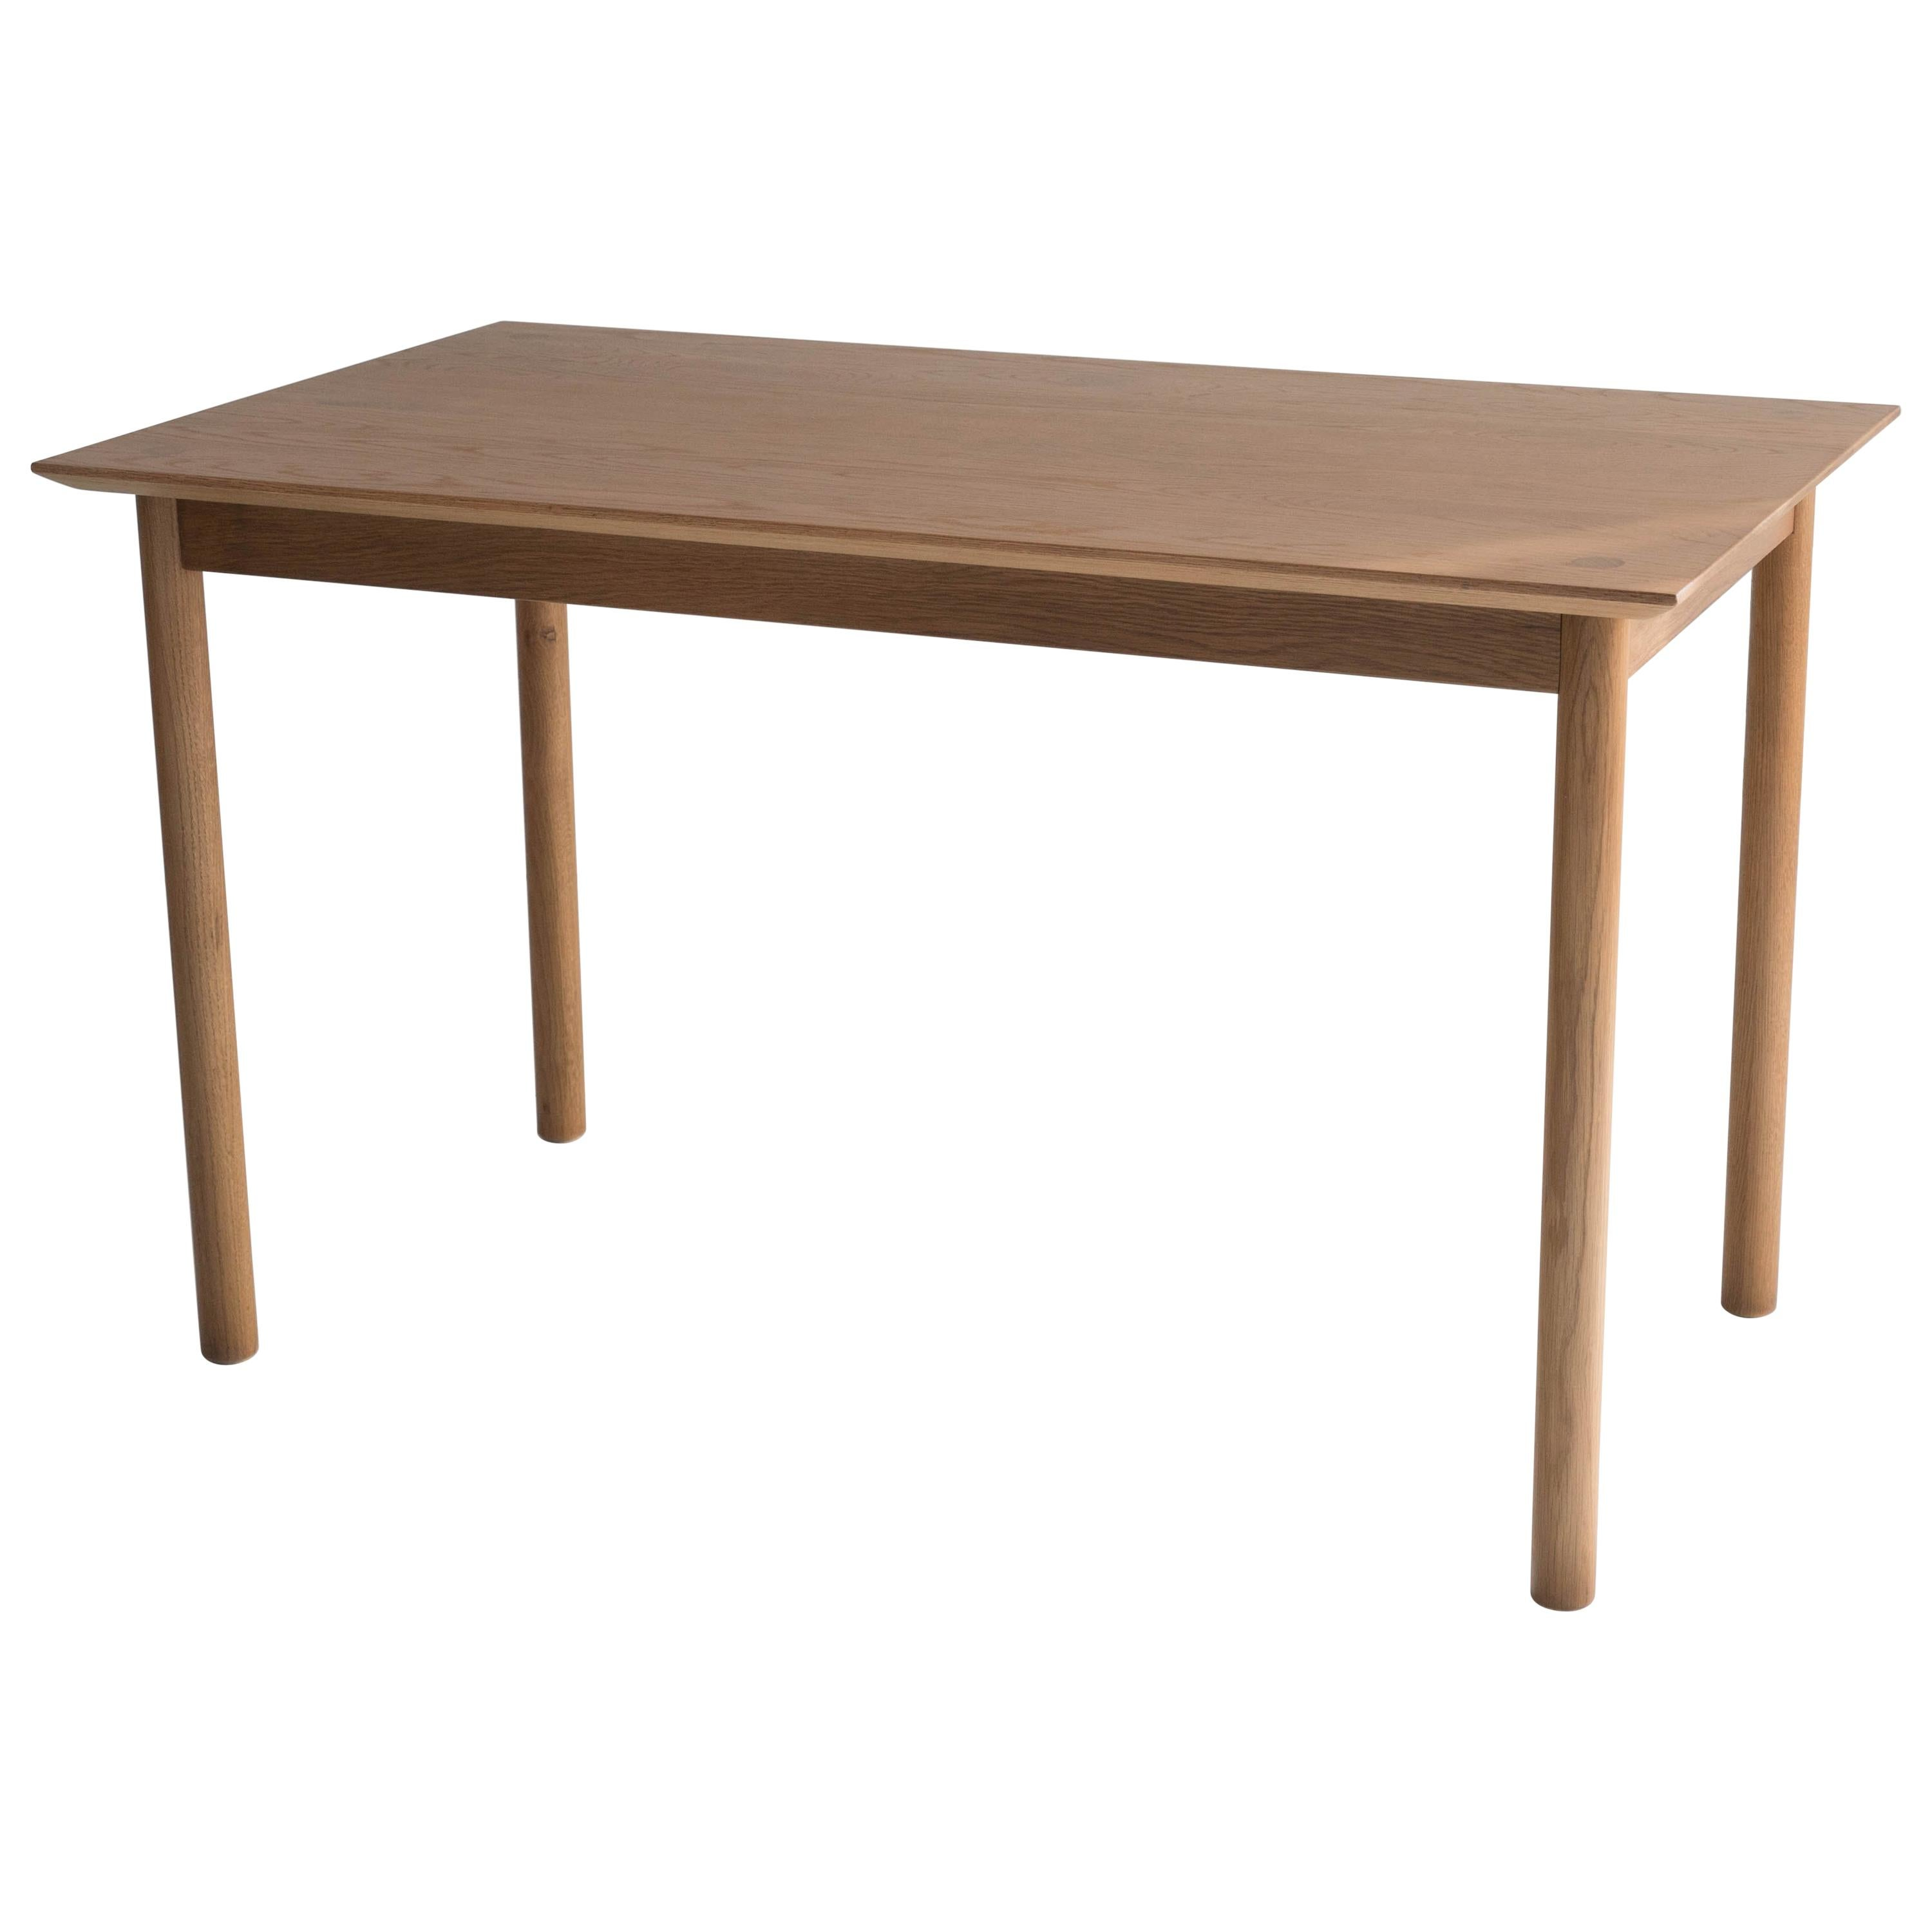 Coast Table by Sun at Six, Sienna, Minimalist Dining Table or Desk in Wood